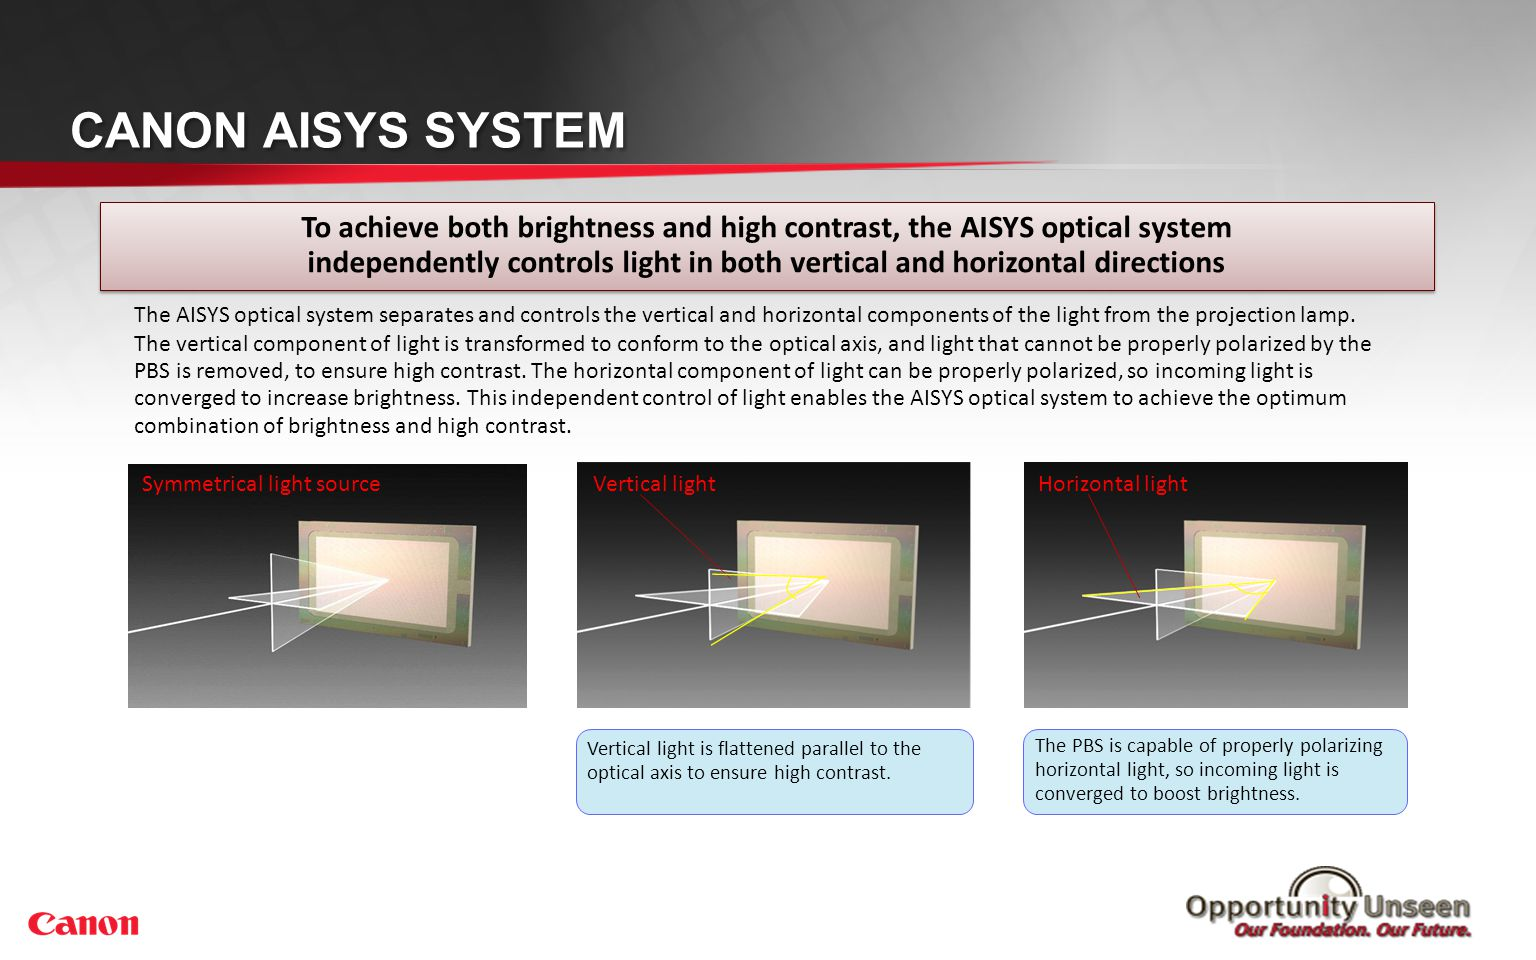 Canon AISYS System How to achieve a combination of brightness and high contrast